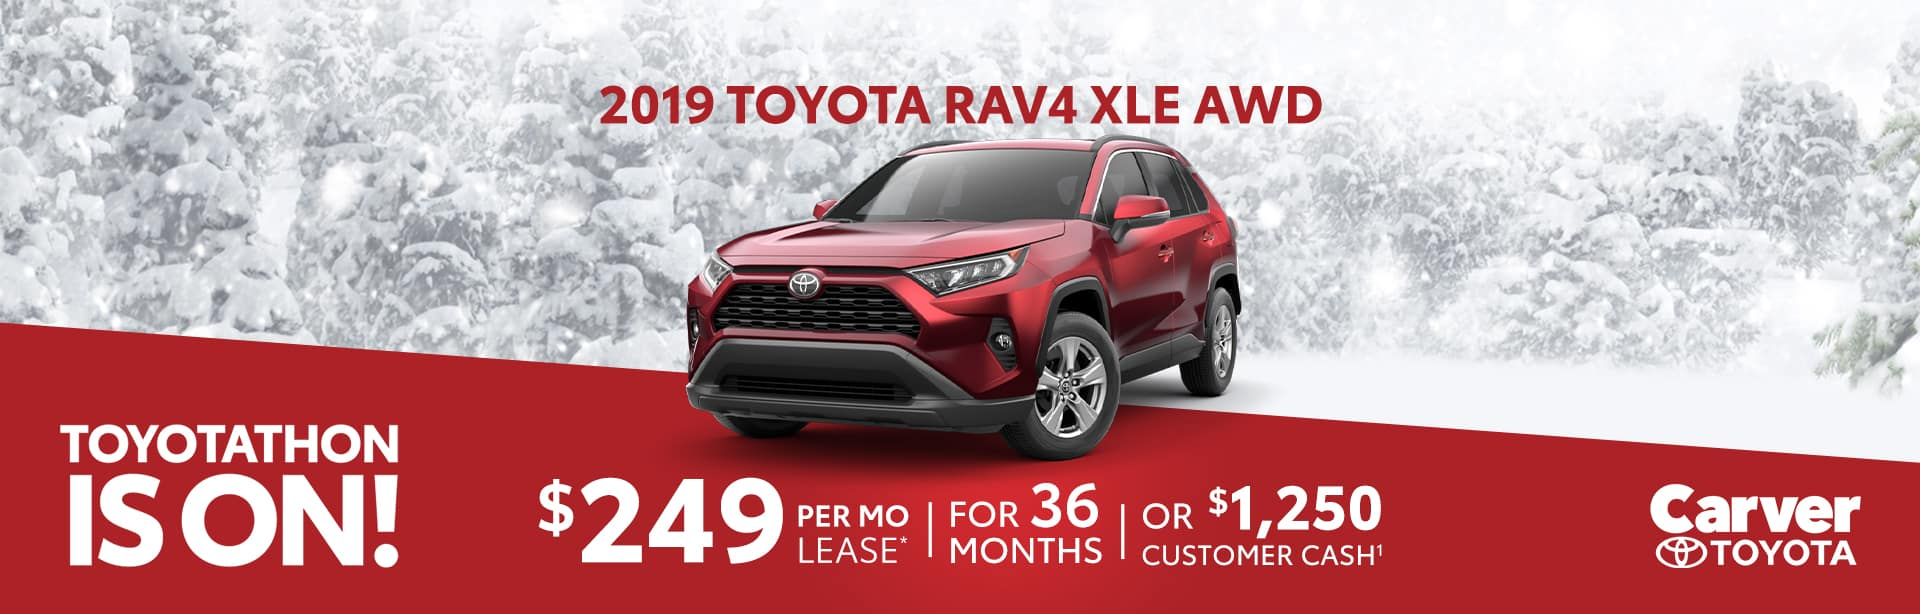 Lease a Rav4 for $249 a month, near Indianapolis, Indiana